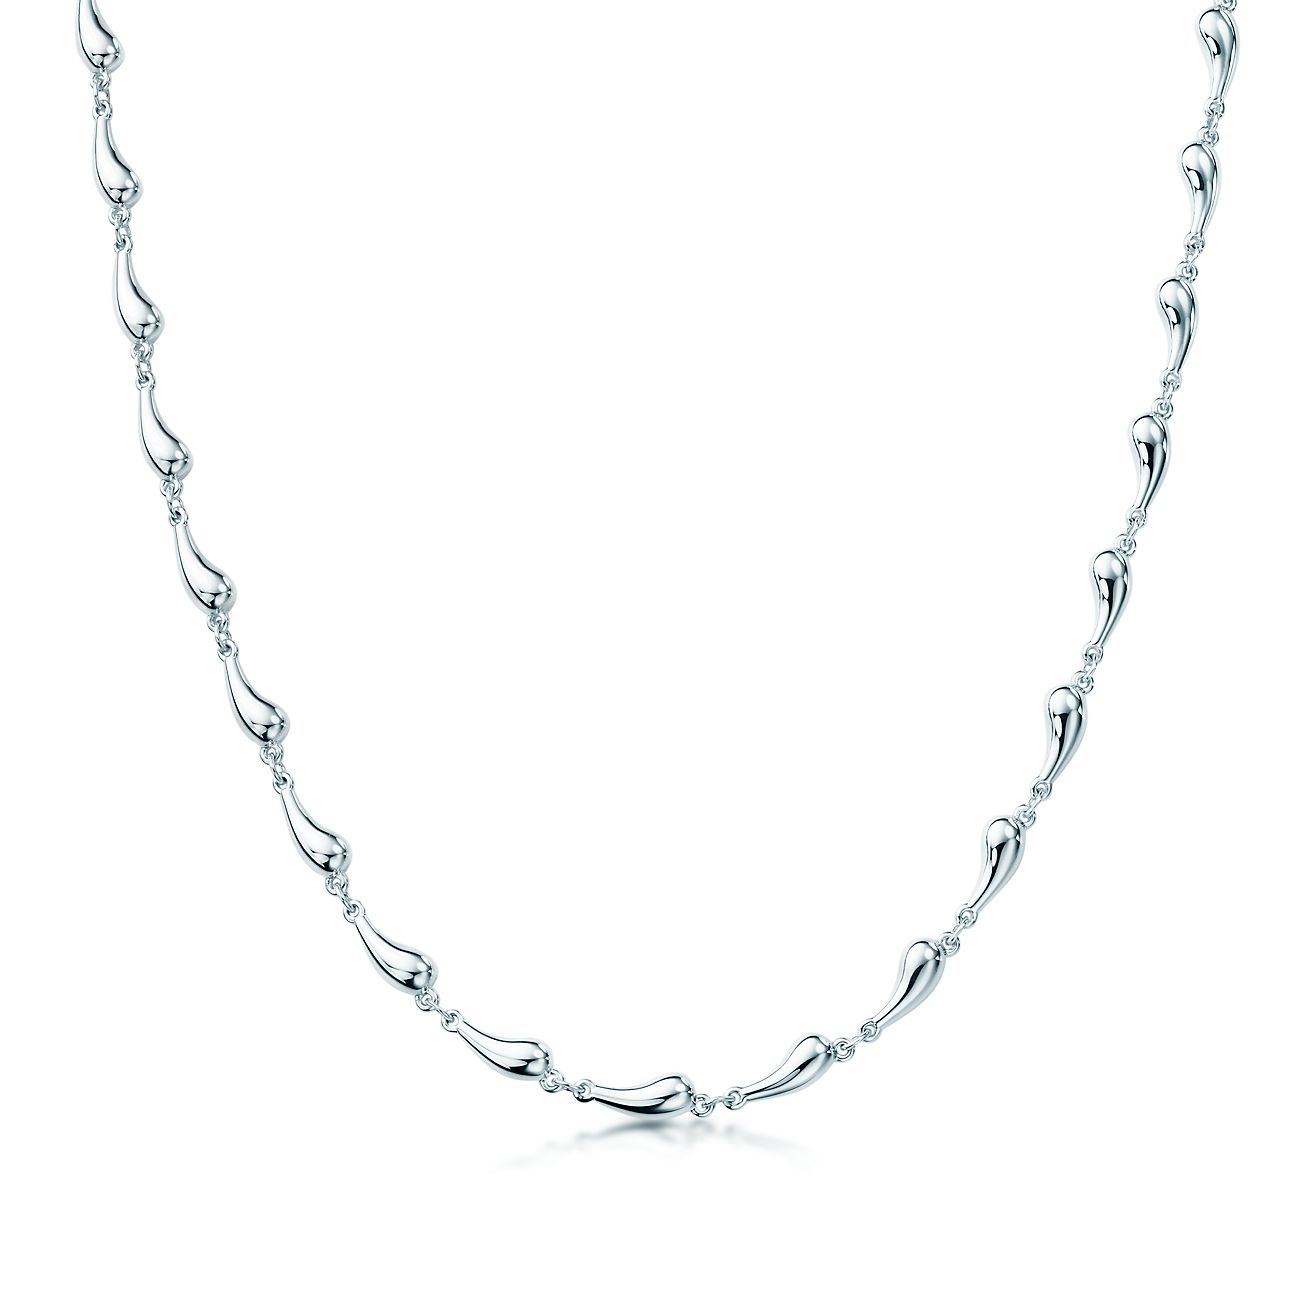 Elsa peretti teardrop necklace in sterling silver tiffany co elsa perettiteardrop necklace aloadofball Image collections